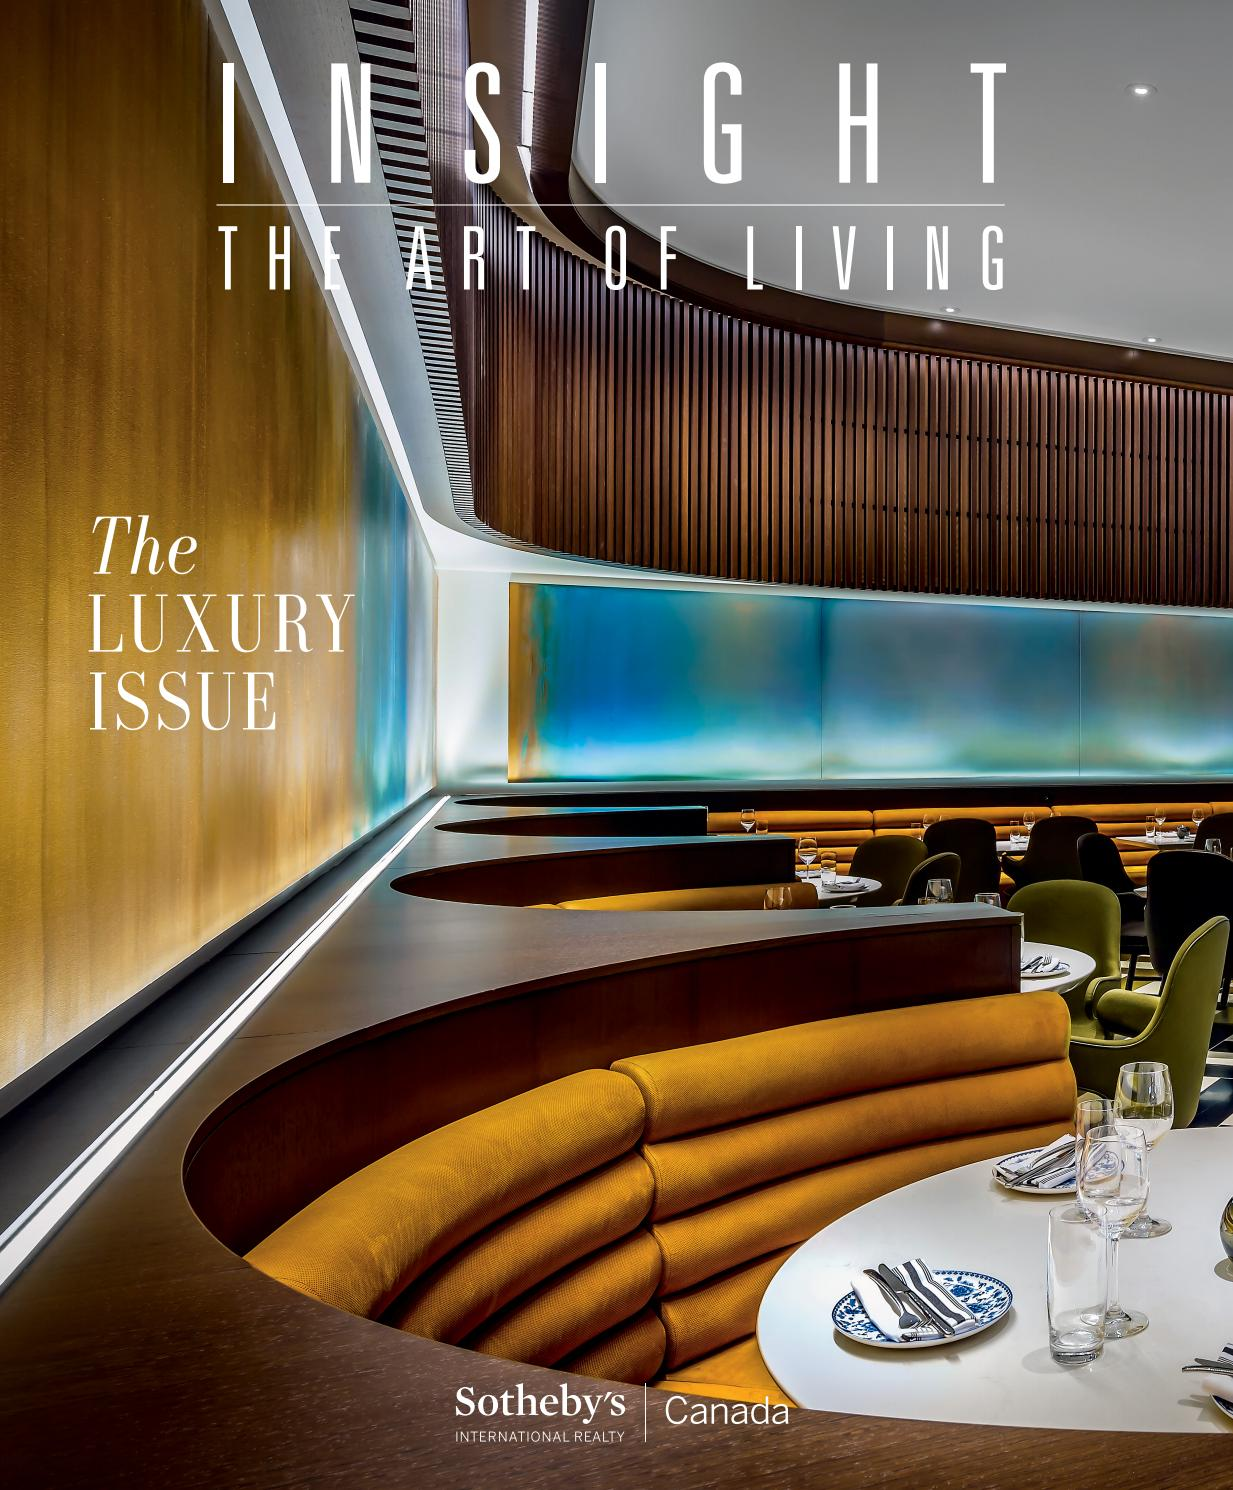 Bar De Jardin En Bois Génial Insight the Art Of Living Fall 2019 by sotheby S Of 36 Luxe Bar De Jardin En Bois